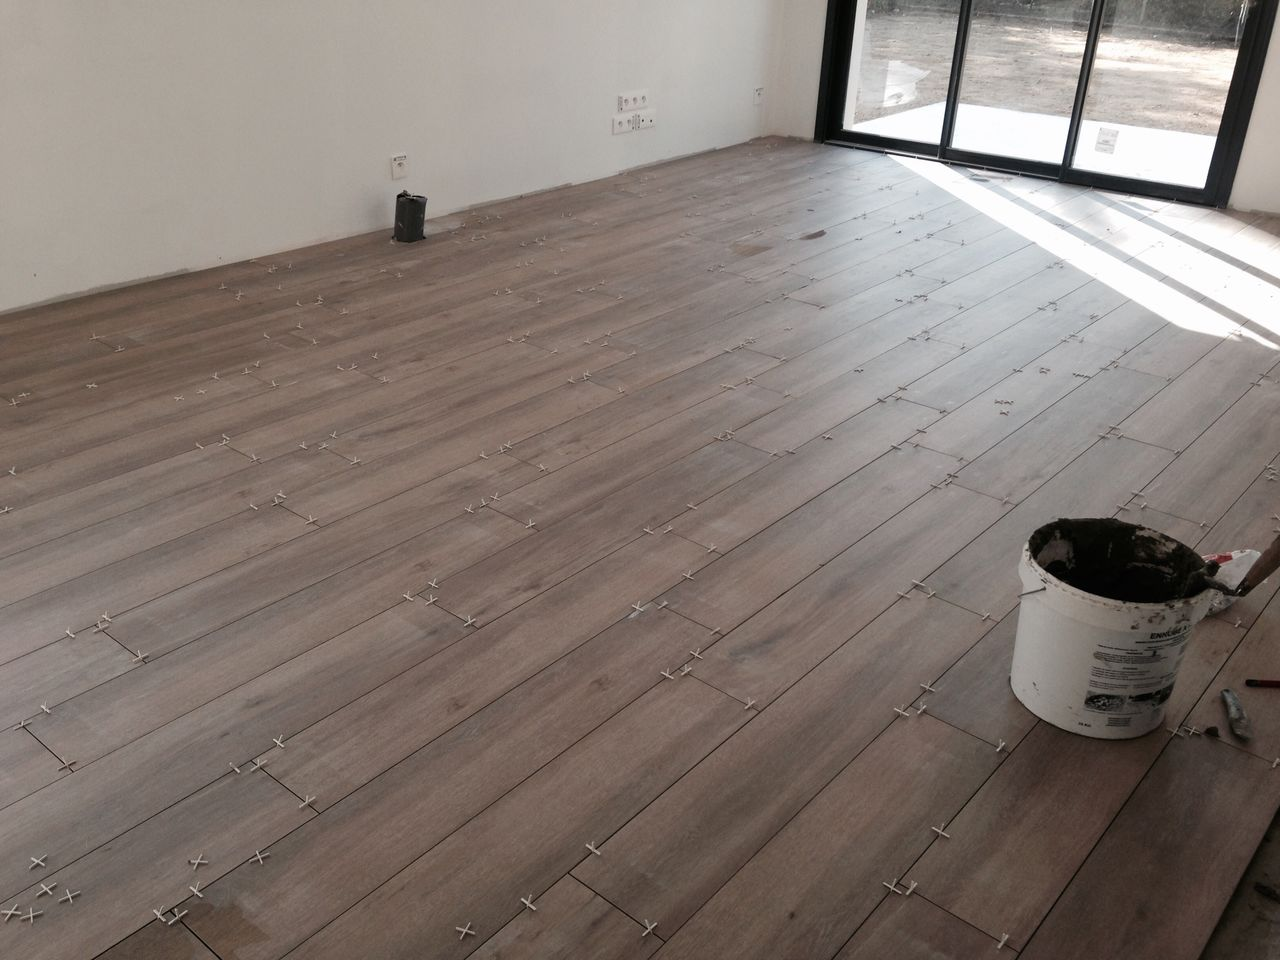 Quelle couleur de joints pour carrelage imitation parquet for Carrelages imitation parquet